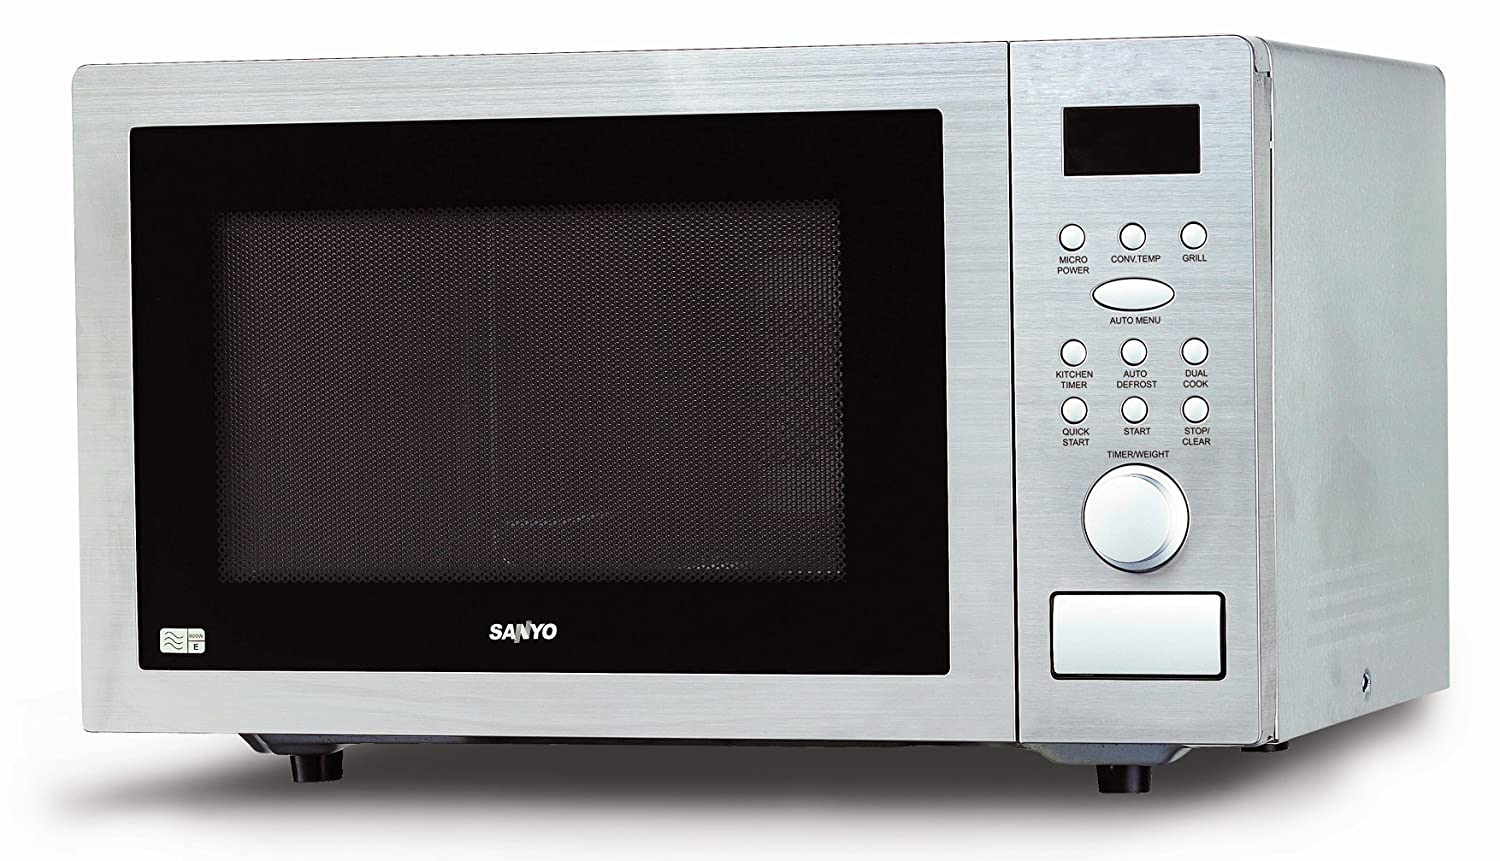 sanyo super showerwave microwave manual daily instruction manual rh repairmanualspace today  sanyo super showerwave microwave 900w manual